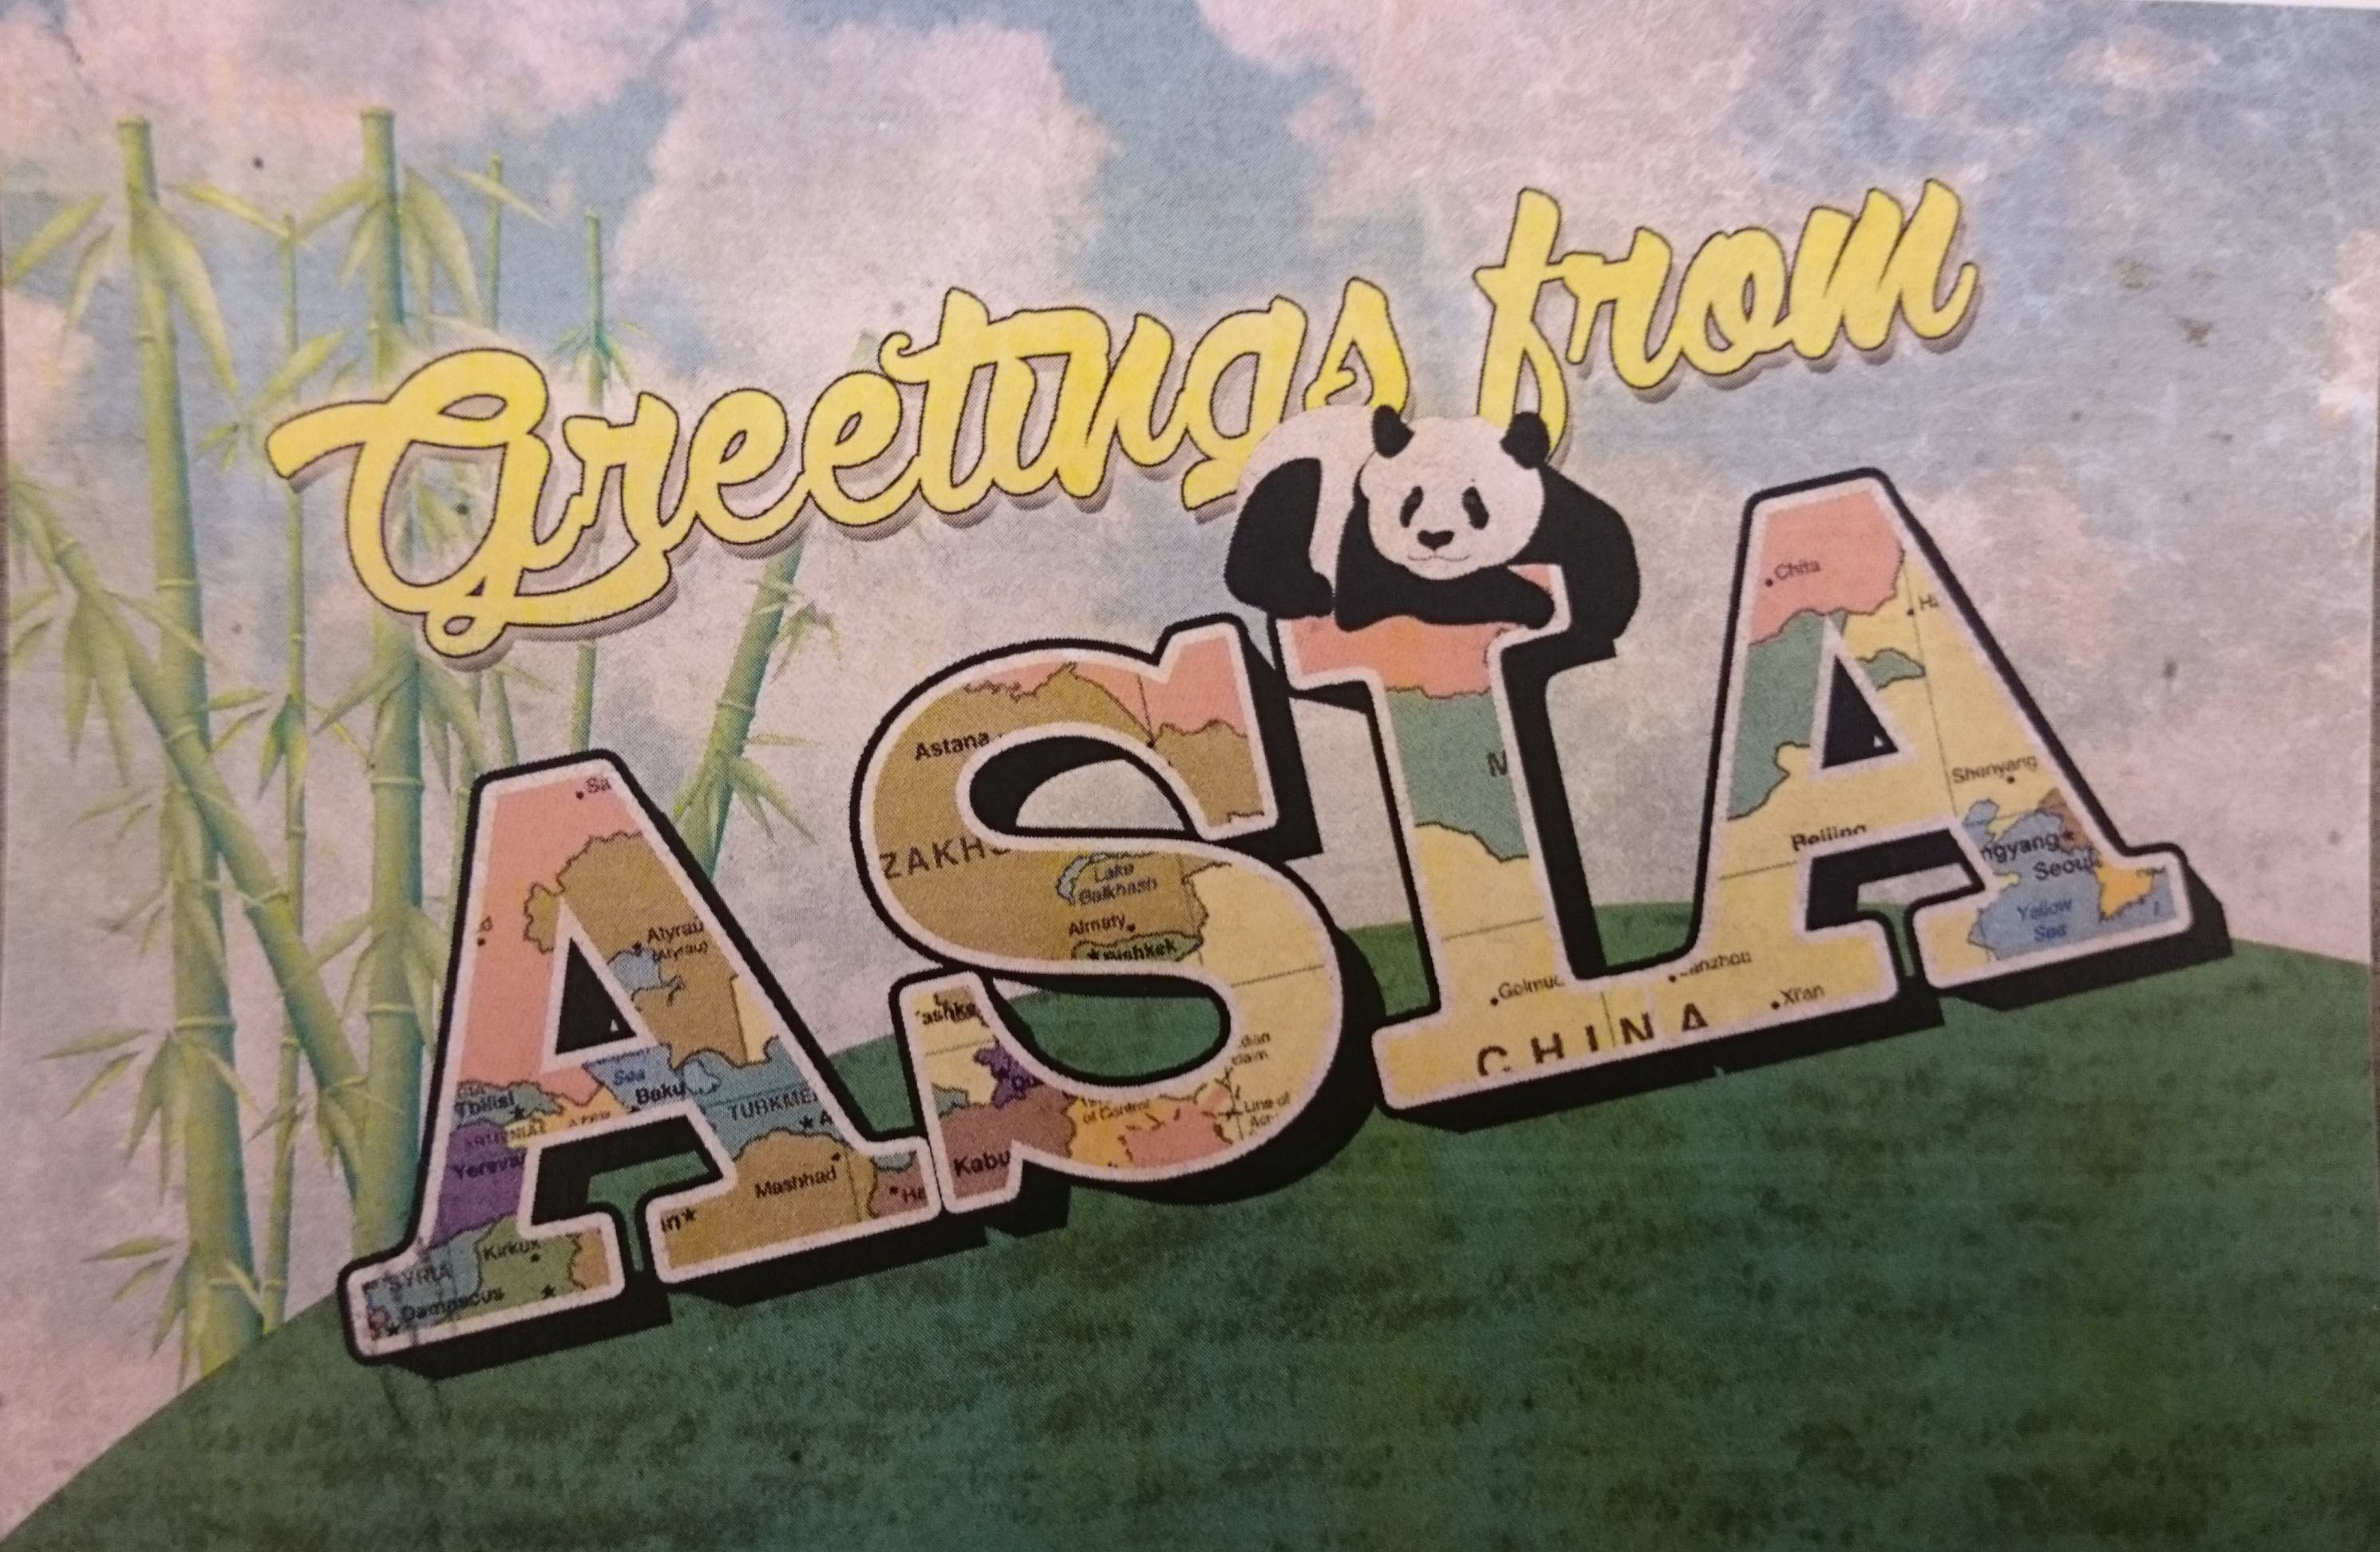 Greetings from Asia postcard